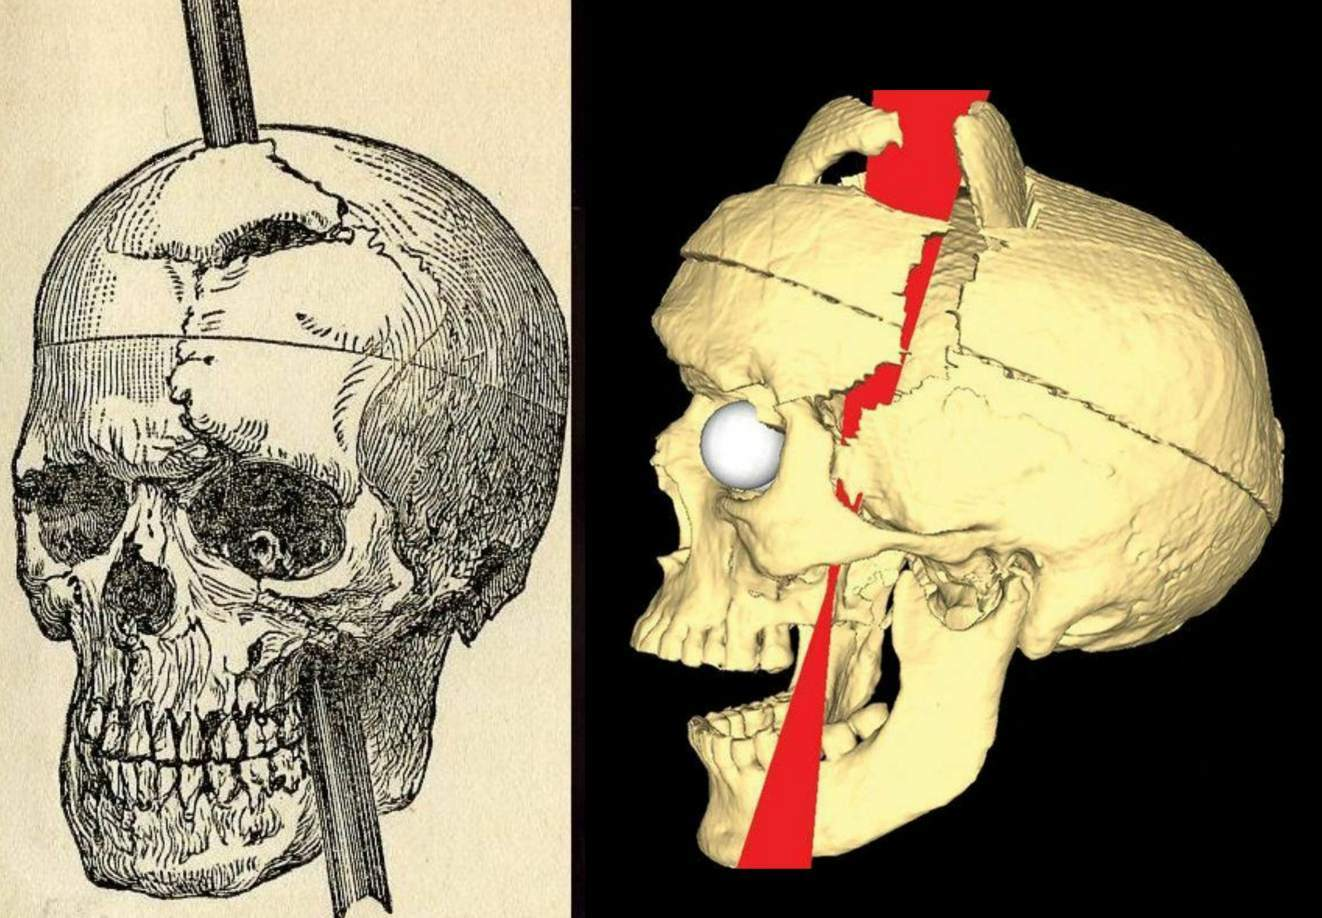 Reproduction image of the accident and photo of the skull: Initially, there were not a lot of notable side effects from the accident, but one thing that developed during his 12days of decline was an issue with half of his face. Behind the left eye, where the spike had passed, an infection began to grow. The eye began to bulge, and bits of infected brain and pus oozed from the socket. Phineasstopped being able to see from that eye, and it developedptosis, or a drooping of the eyelid.This ptosis would not go away for the remainder of his life. Thescars fromthe initial injury still remained, as well. In fact, many muscles in the left side of his face never fully recovered, leaving him with little movement on that side.